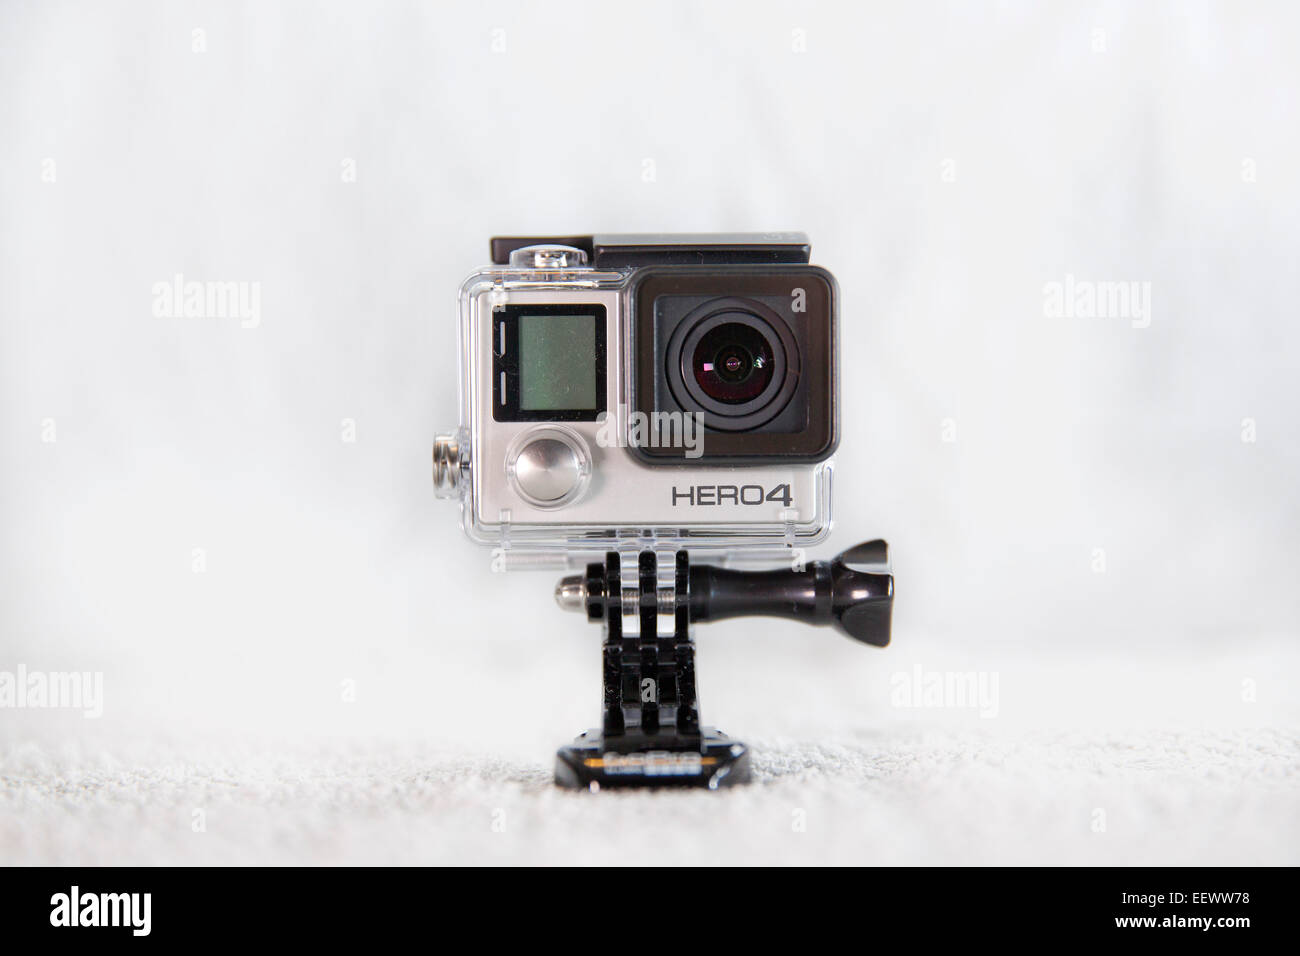 A GoPro Hero 4 Black edition is pictured in its waterproof housing in studio on a white background. - Stock Image